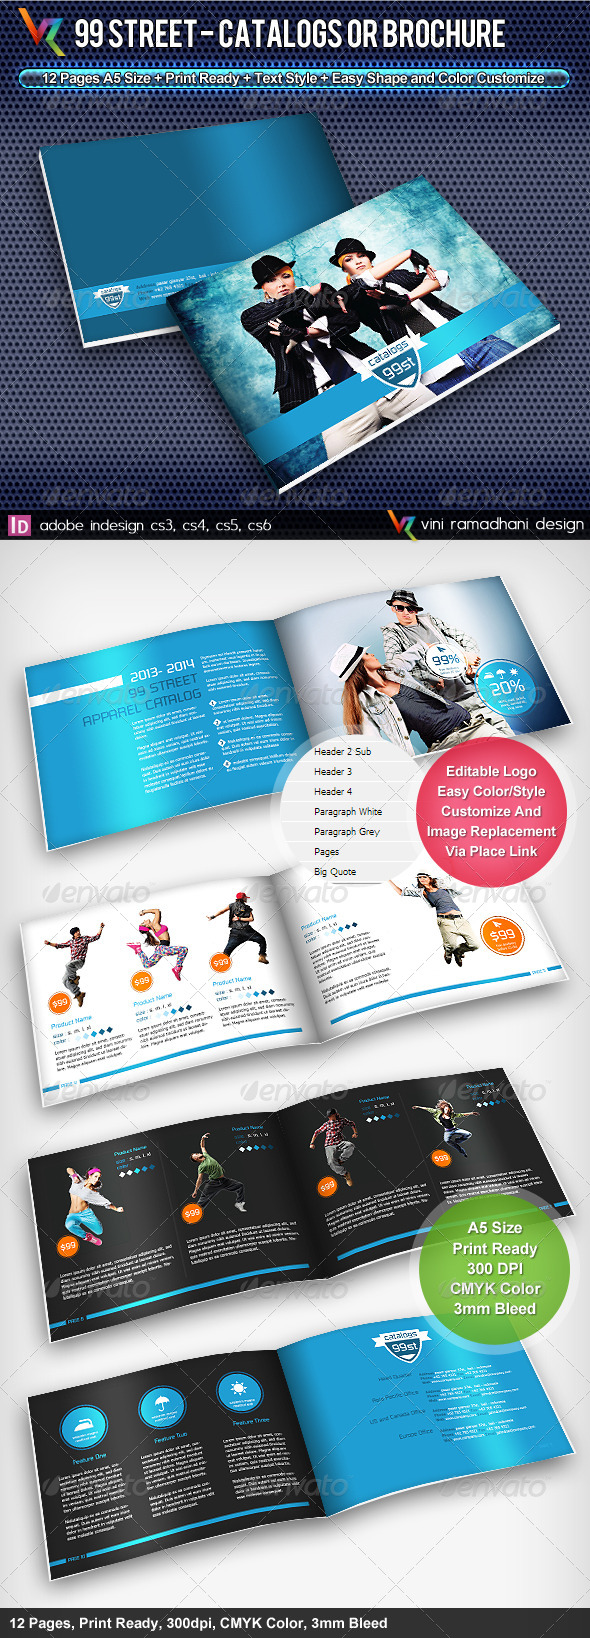 GraphicRiver 99 Street Catalogs Or Brochure